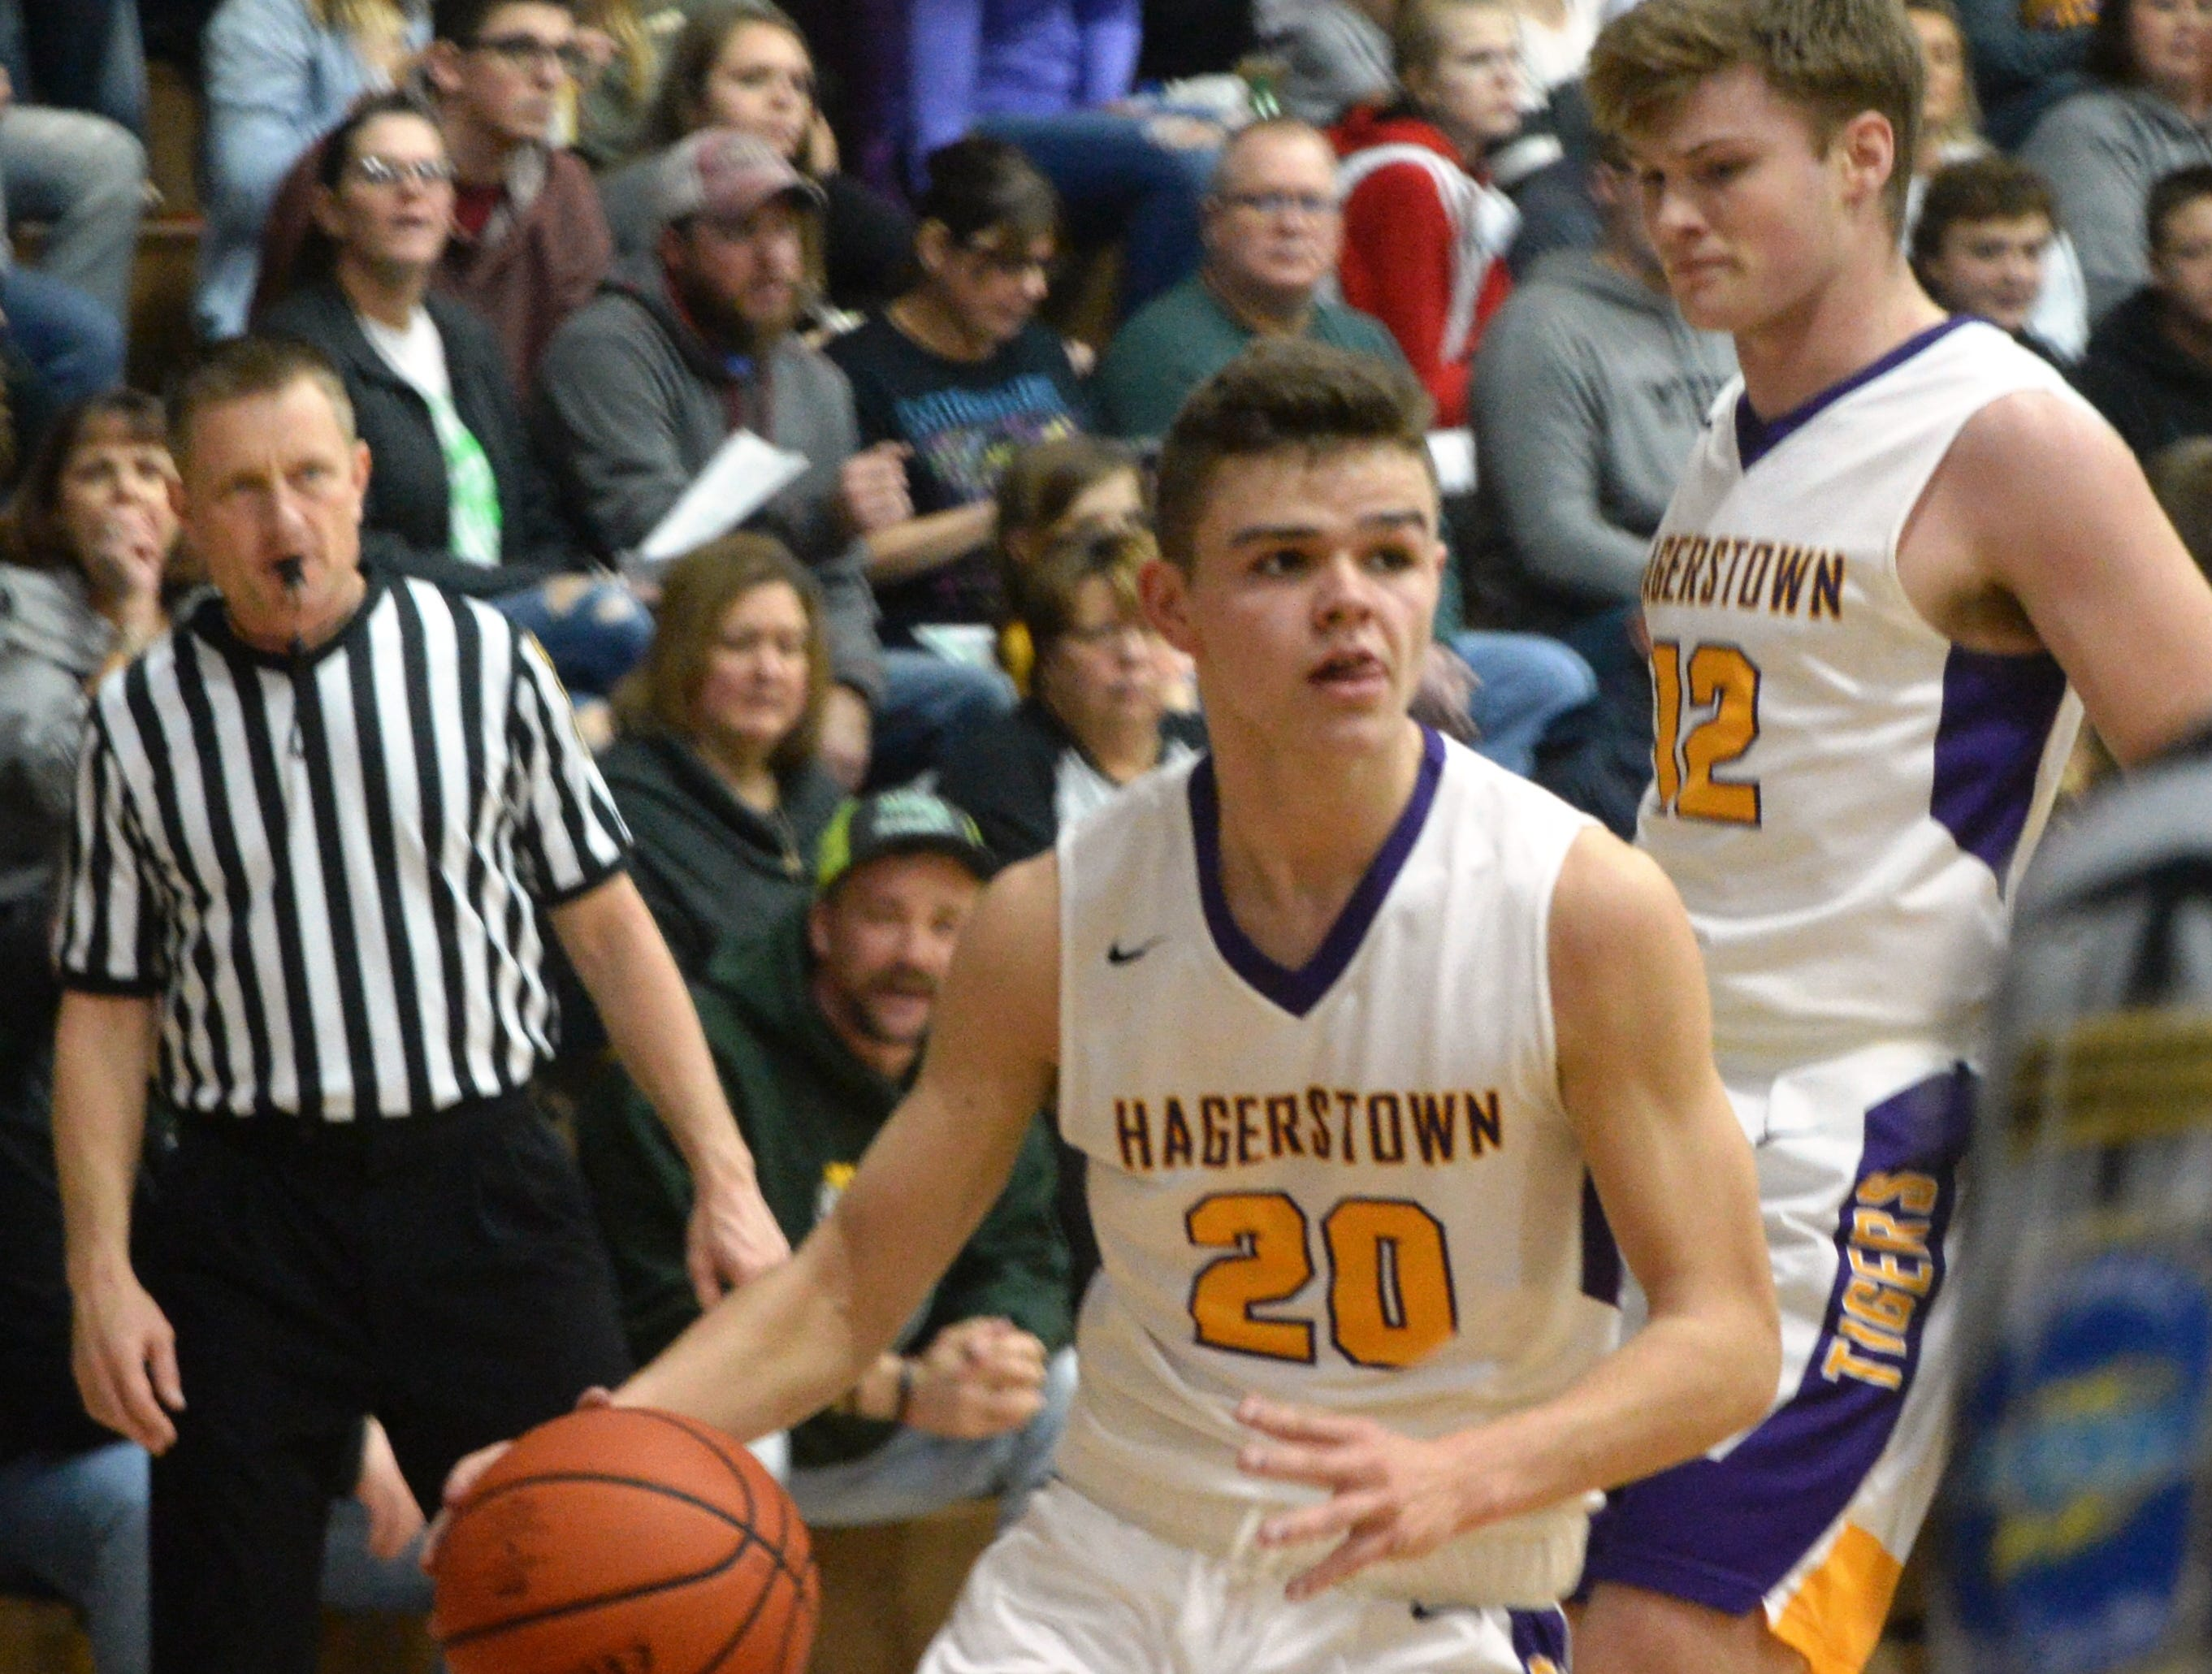 Hagerstown's Braden Himelick moves the ball during the Wayne County boys basketball championship at Hagerstown Saturday, Jan. 5, 2019. Hagerstown defeated Northeastern 37-35 to win the girls' title, and Northeastern beat Hagerstown 60-49 in the boys championship.